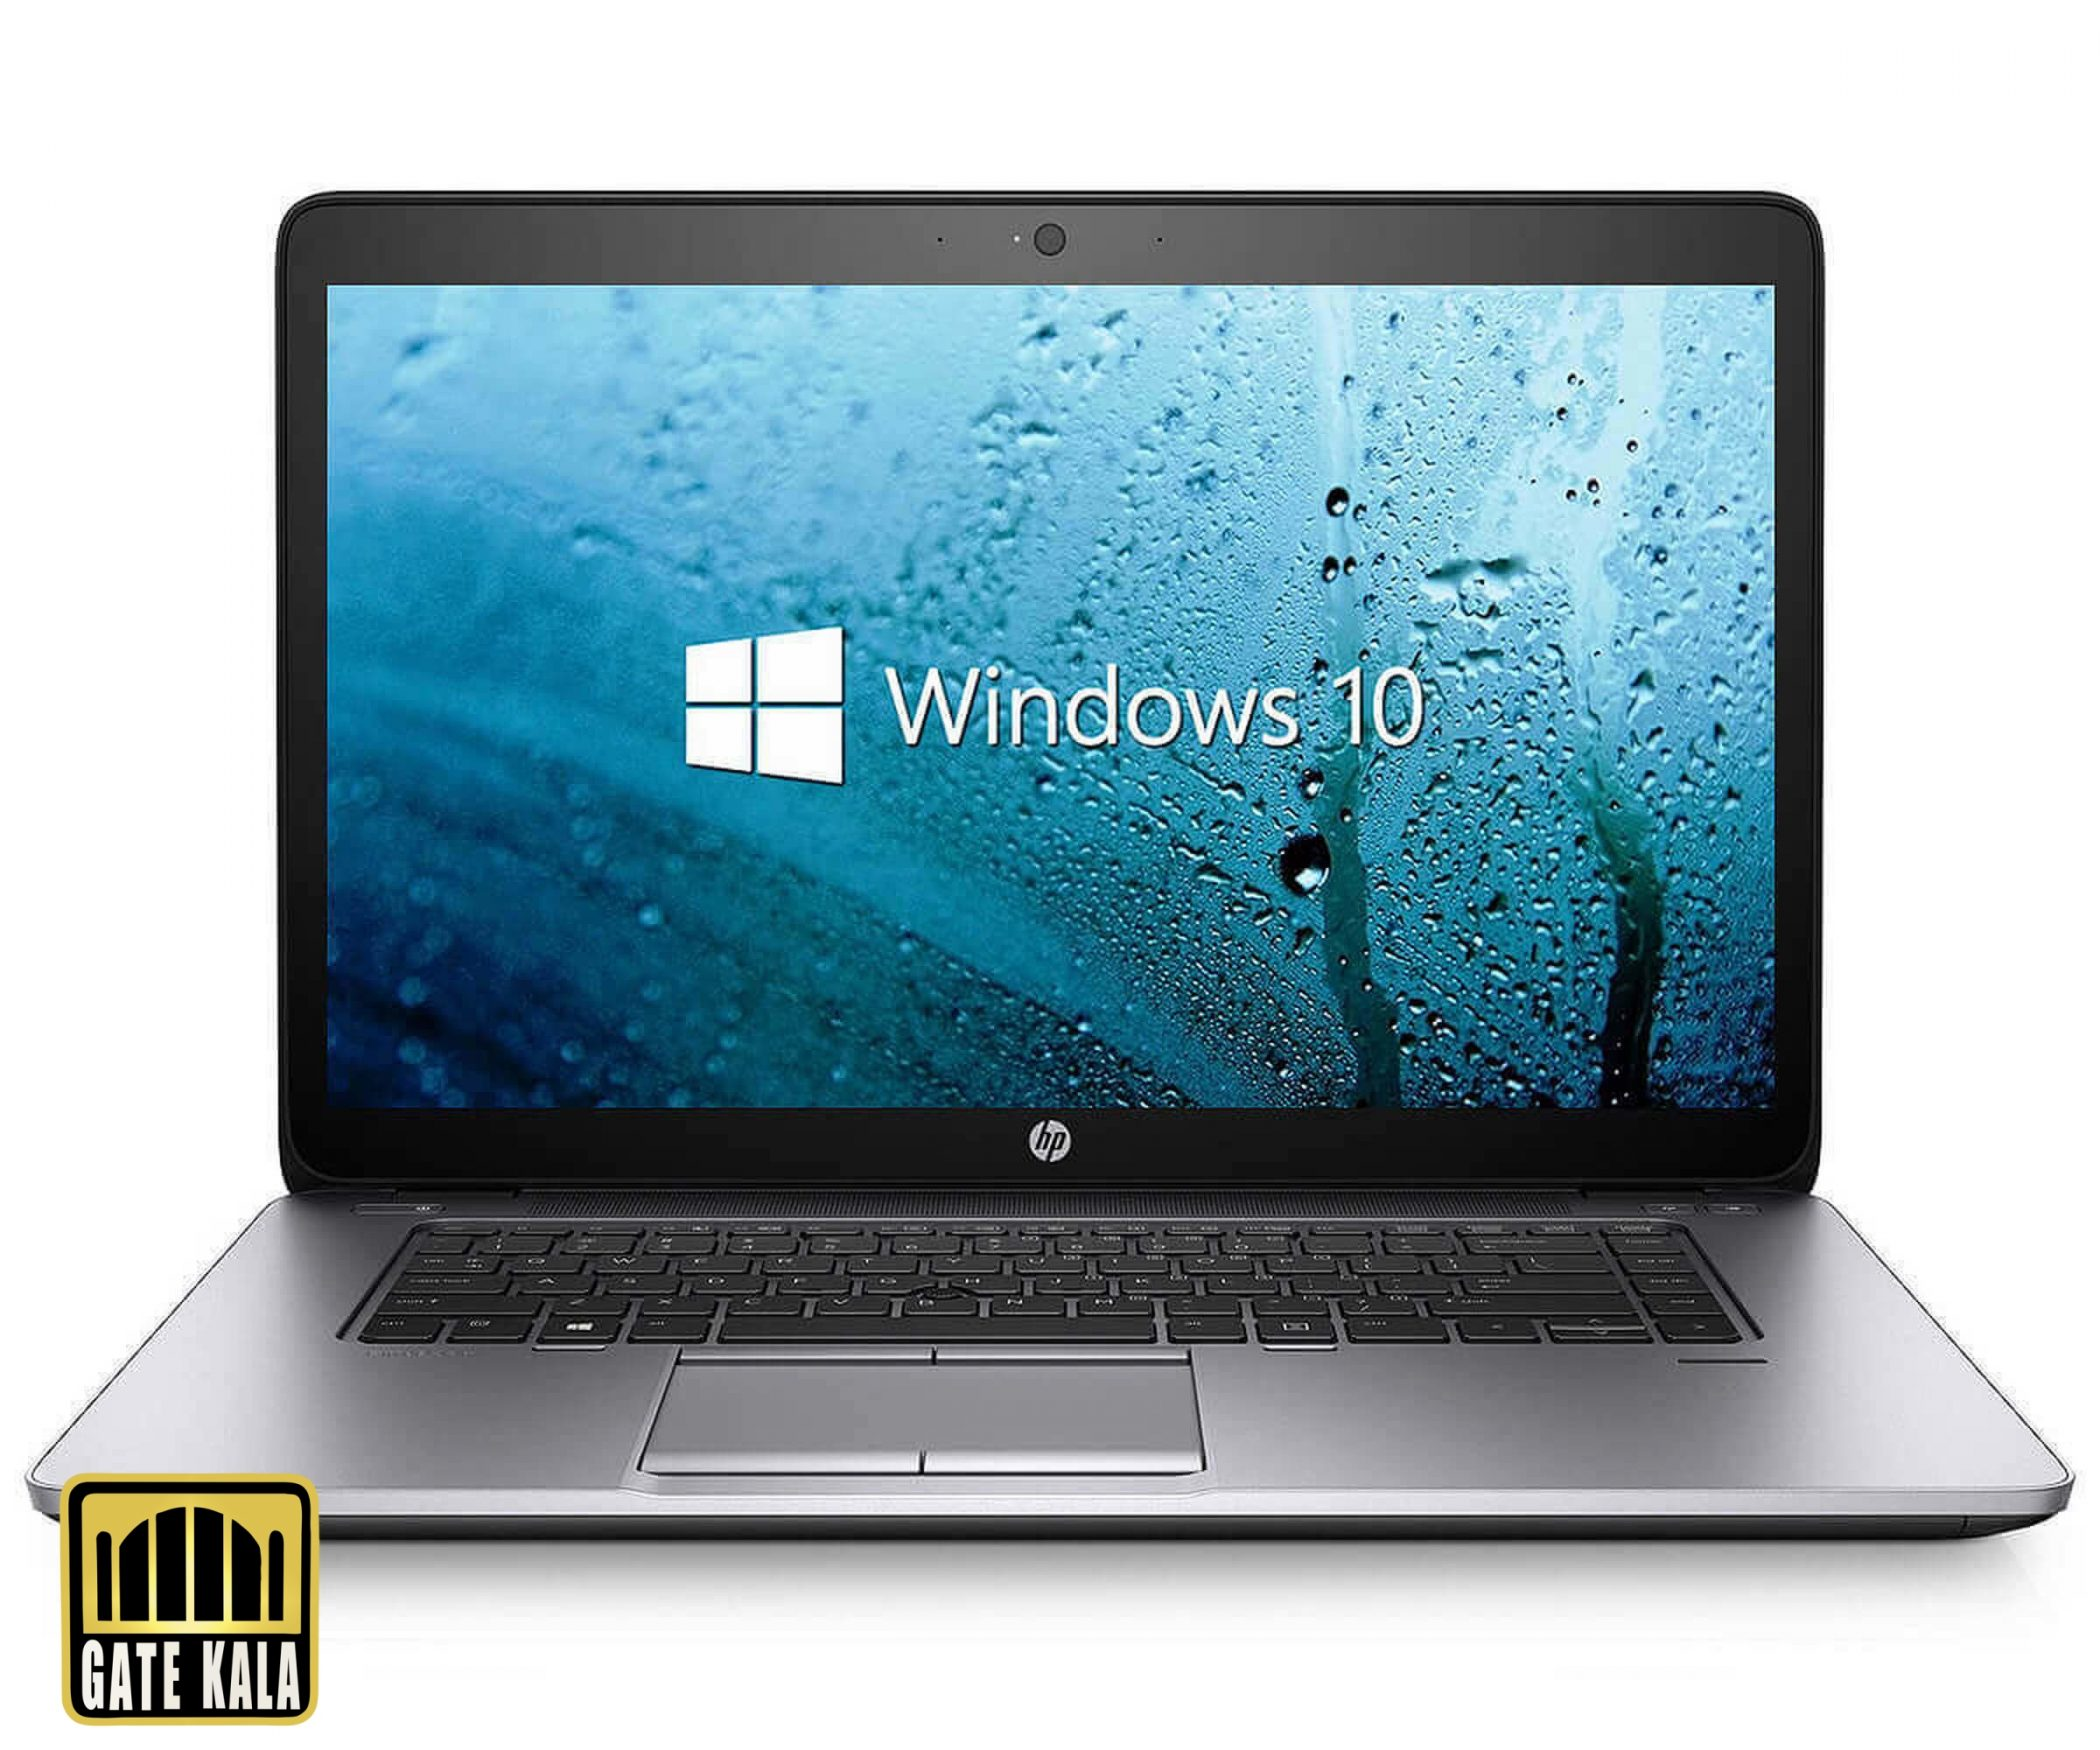 لپ تاپ اچ پی HP 850 G1 |CPU Core i5|4GB|500GB|intel HD